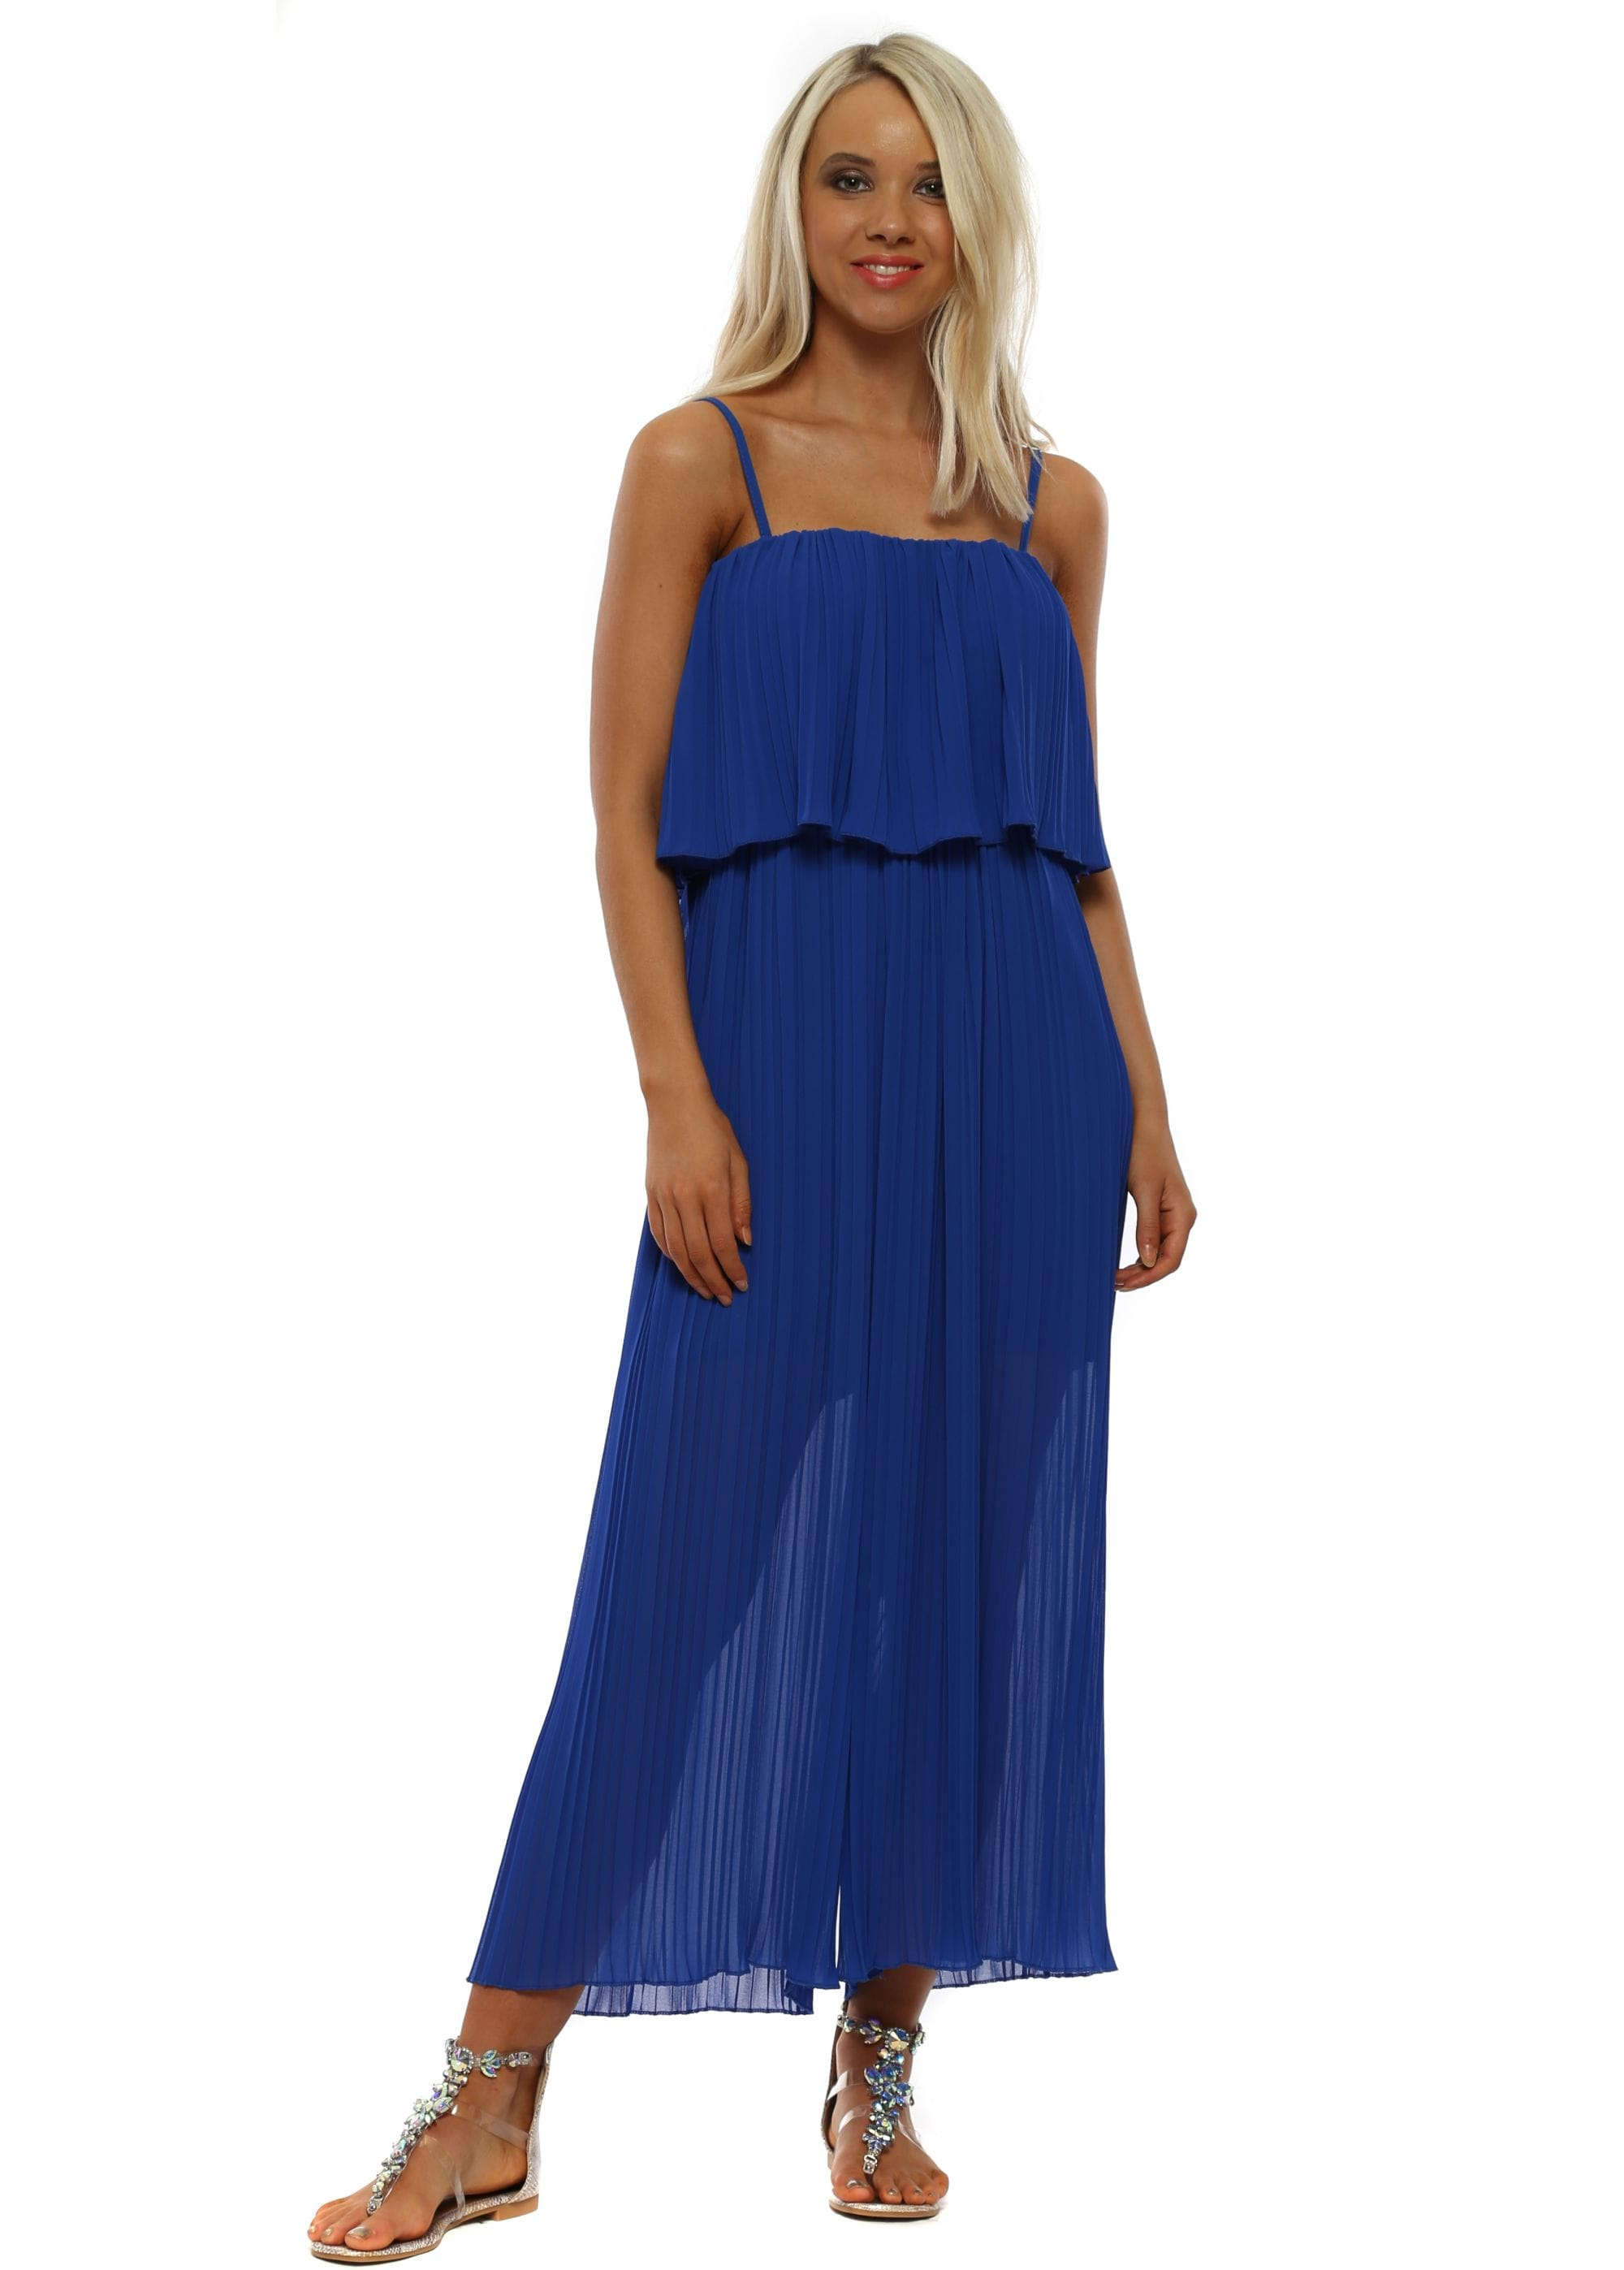 competitive price hot-selling clearance limited guantity Cobalt Blue Pleated Jumpsuit